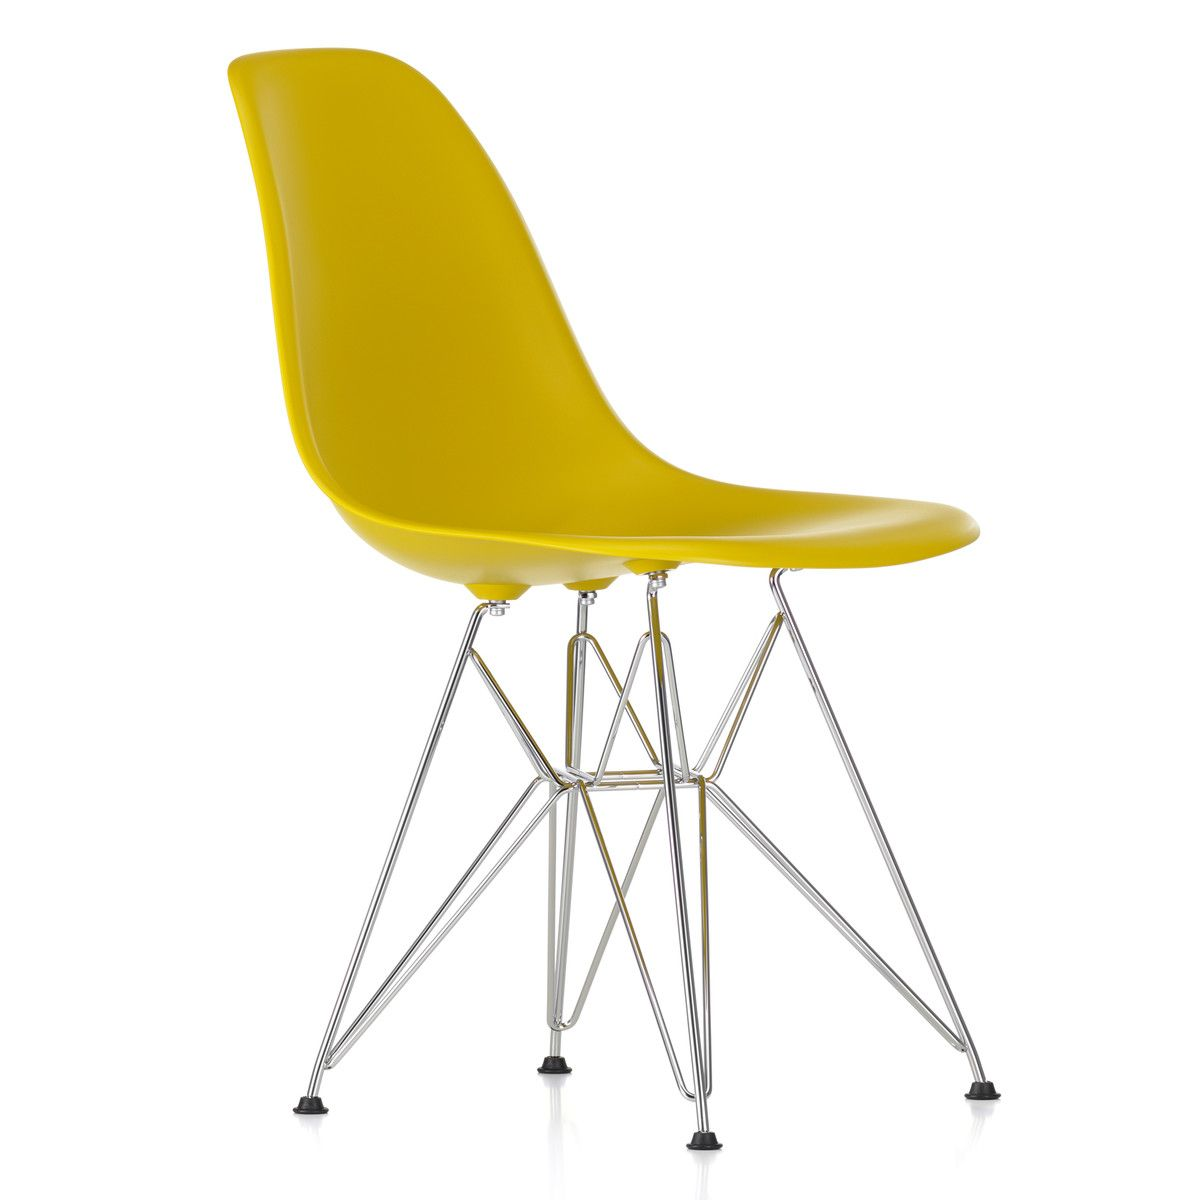 Vitra Eames Side Chair Vitra Eames Plastic Side Chair Dsr Verchromt Weiß